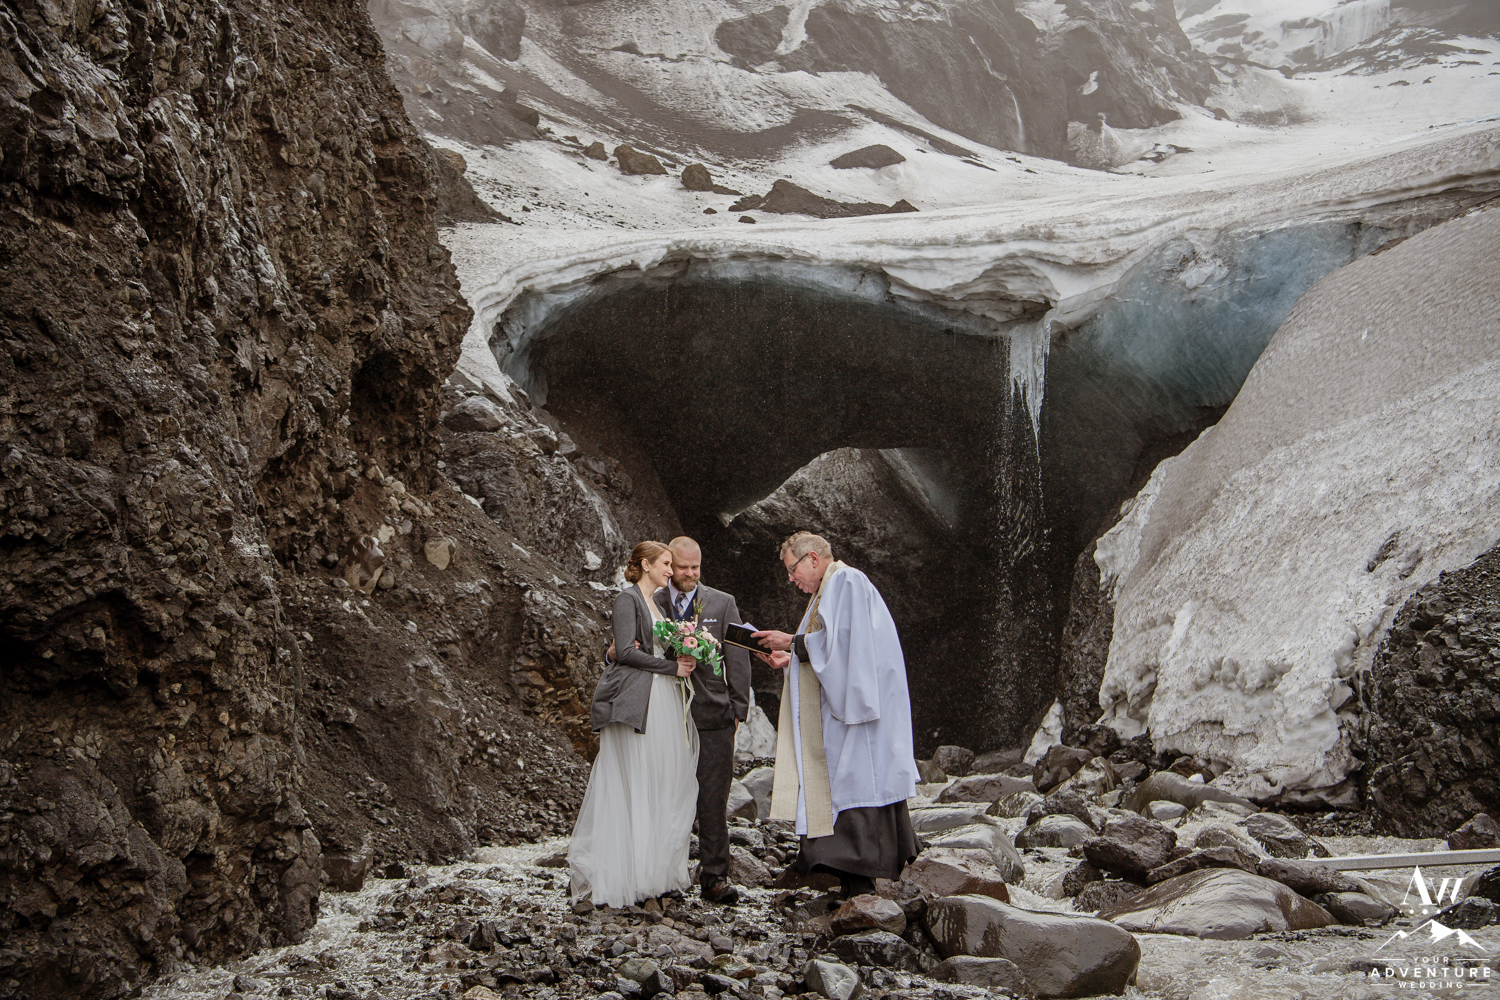 Iceland ice cave wedding ceremony